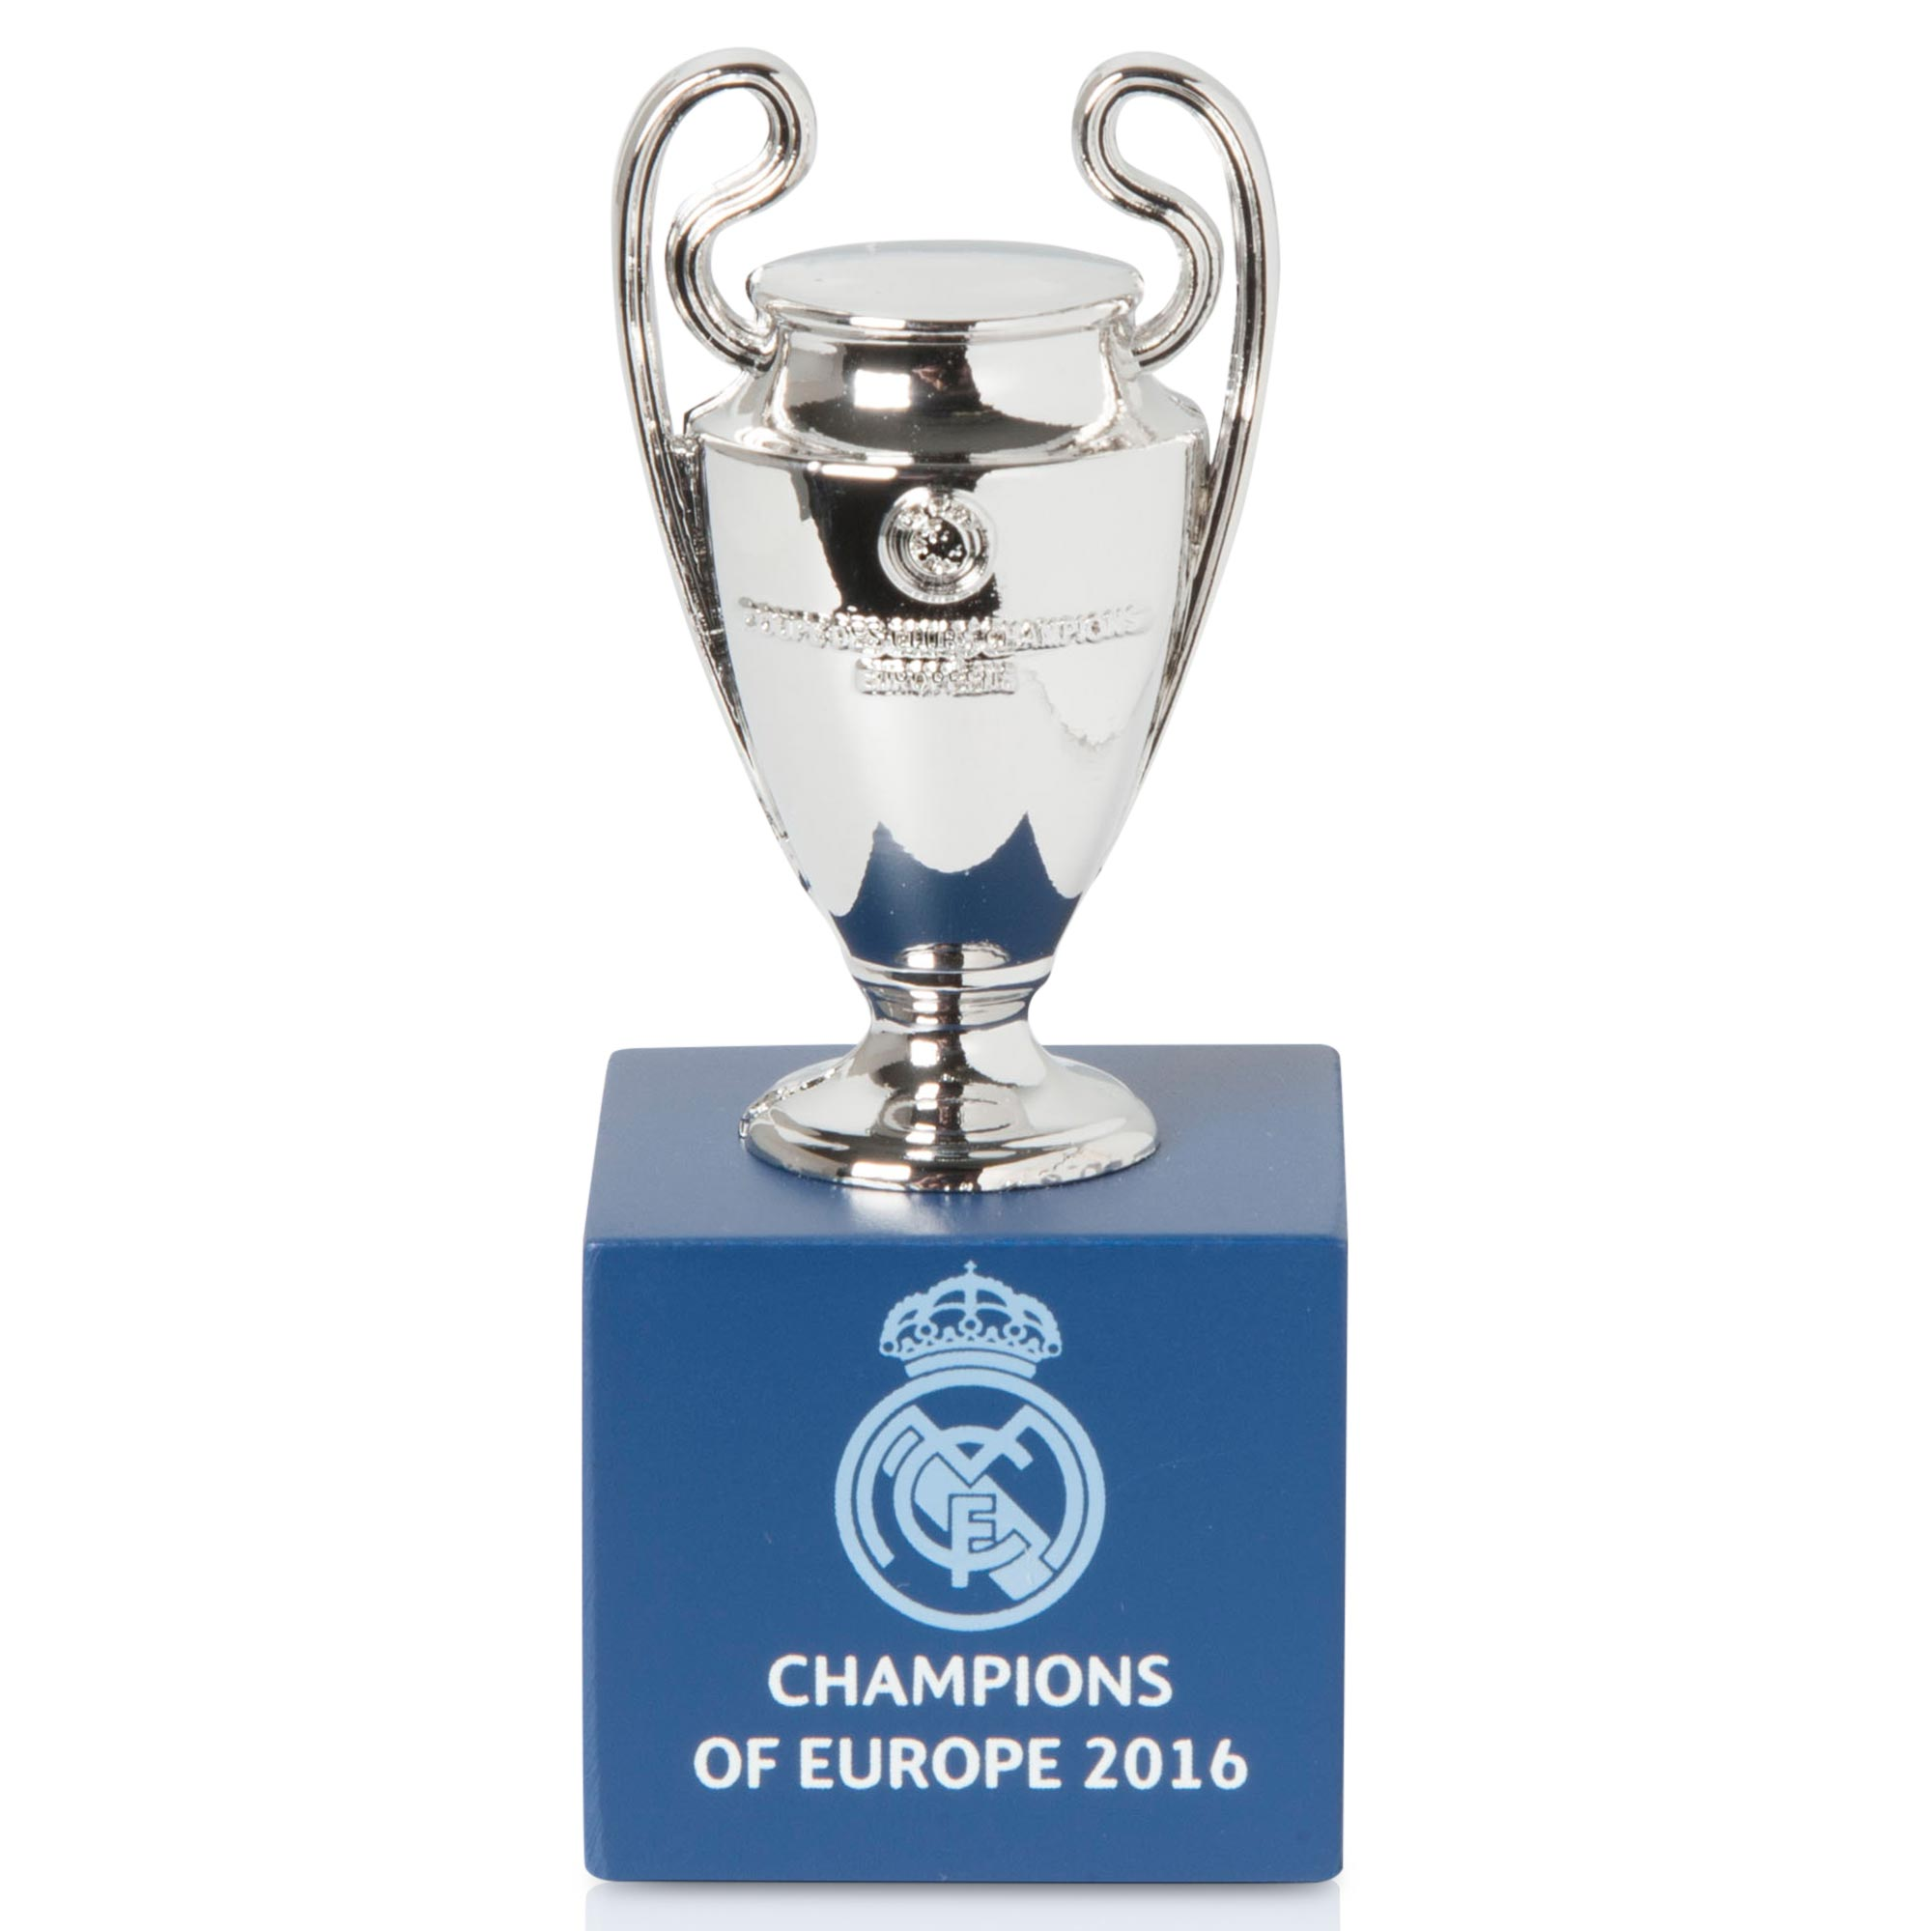 Image of Real Madrid 2016 Champions of Europe Trophy on Wooden Pedestal - 45mm